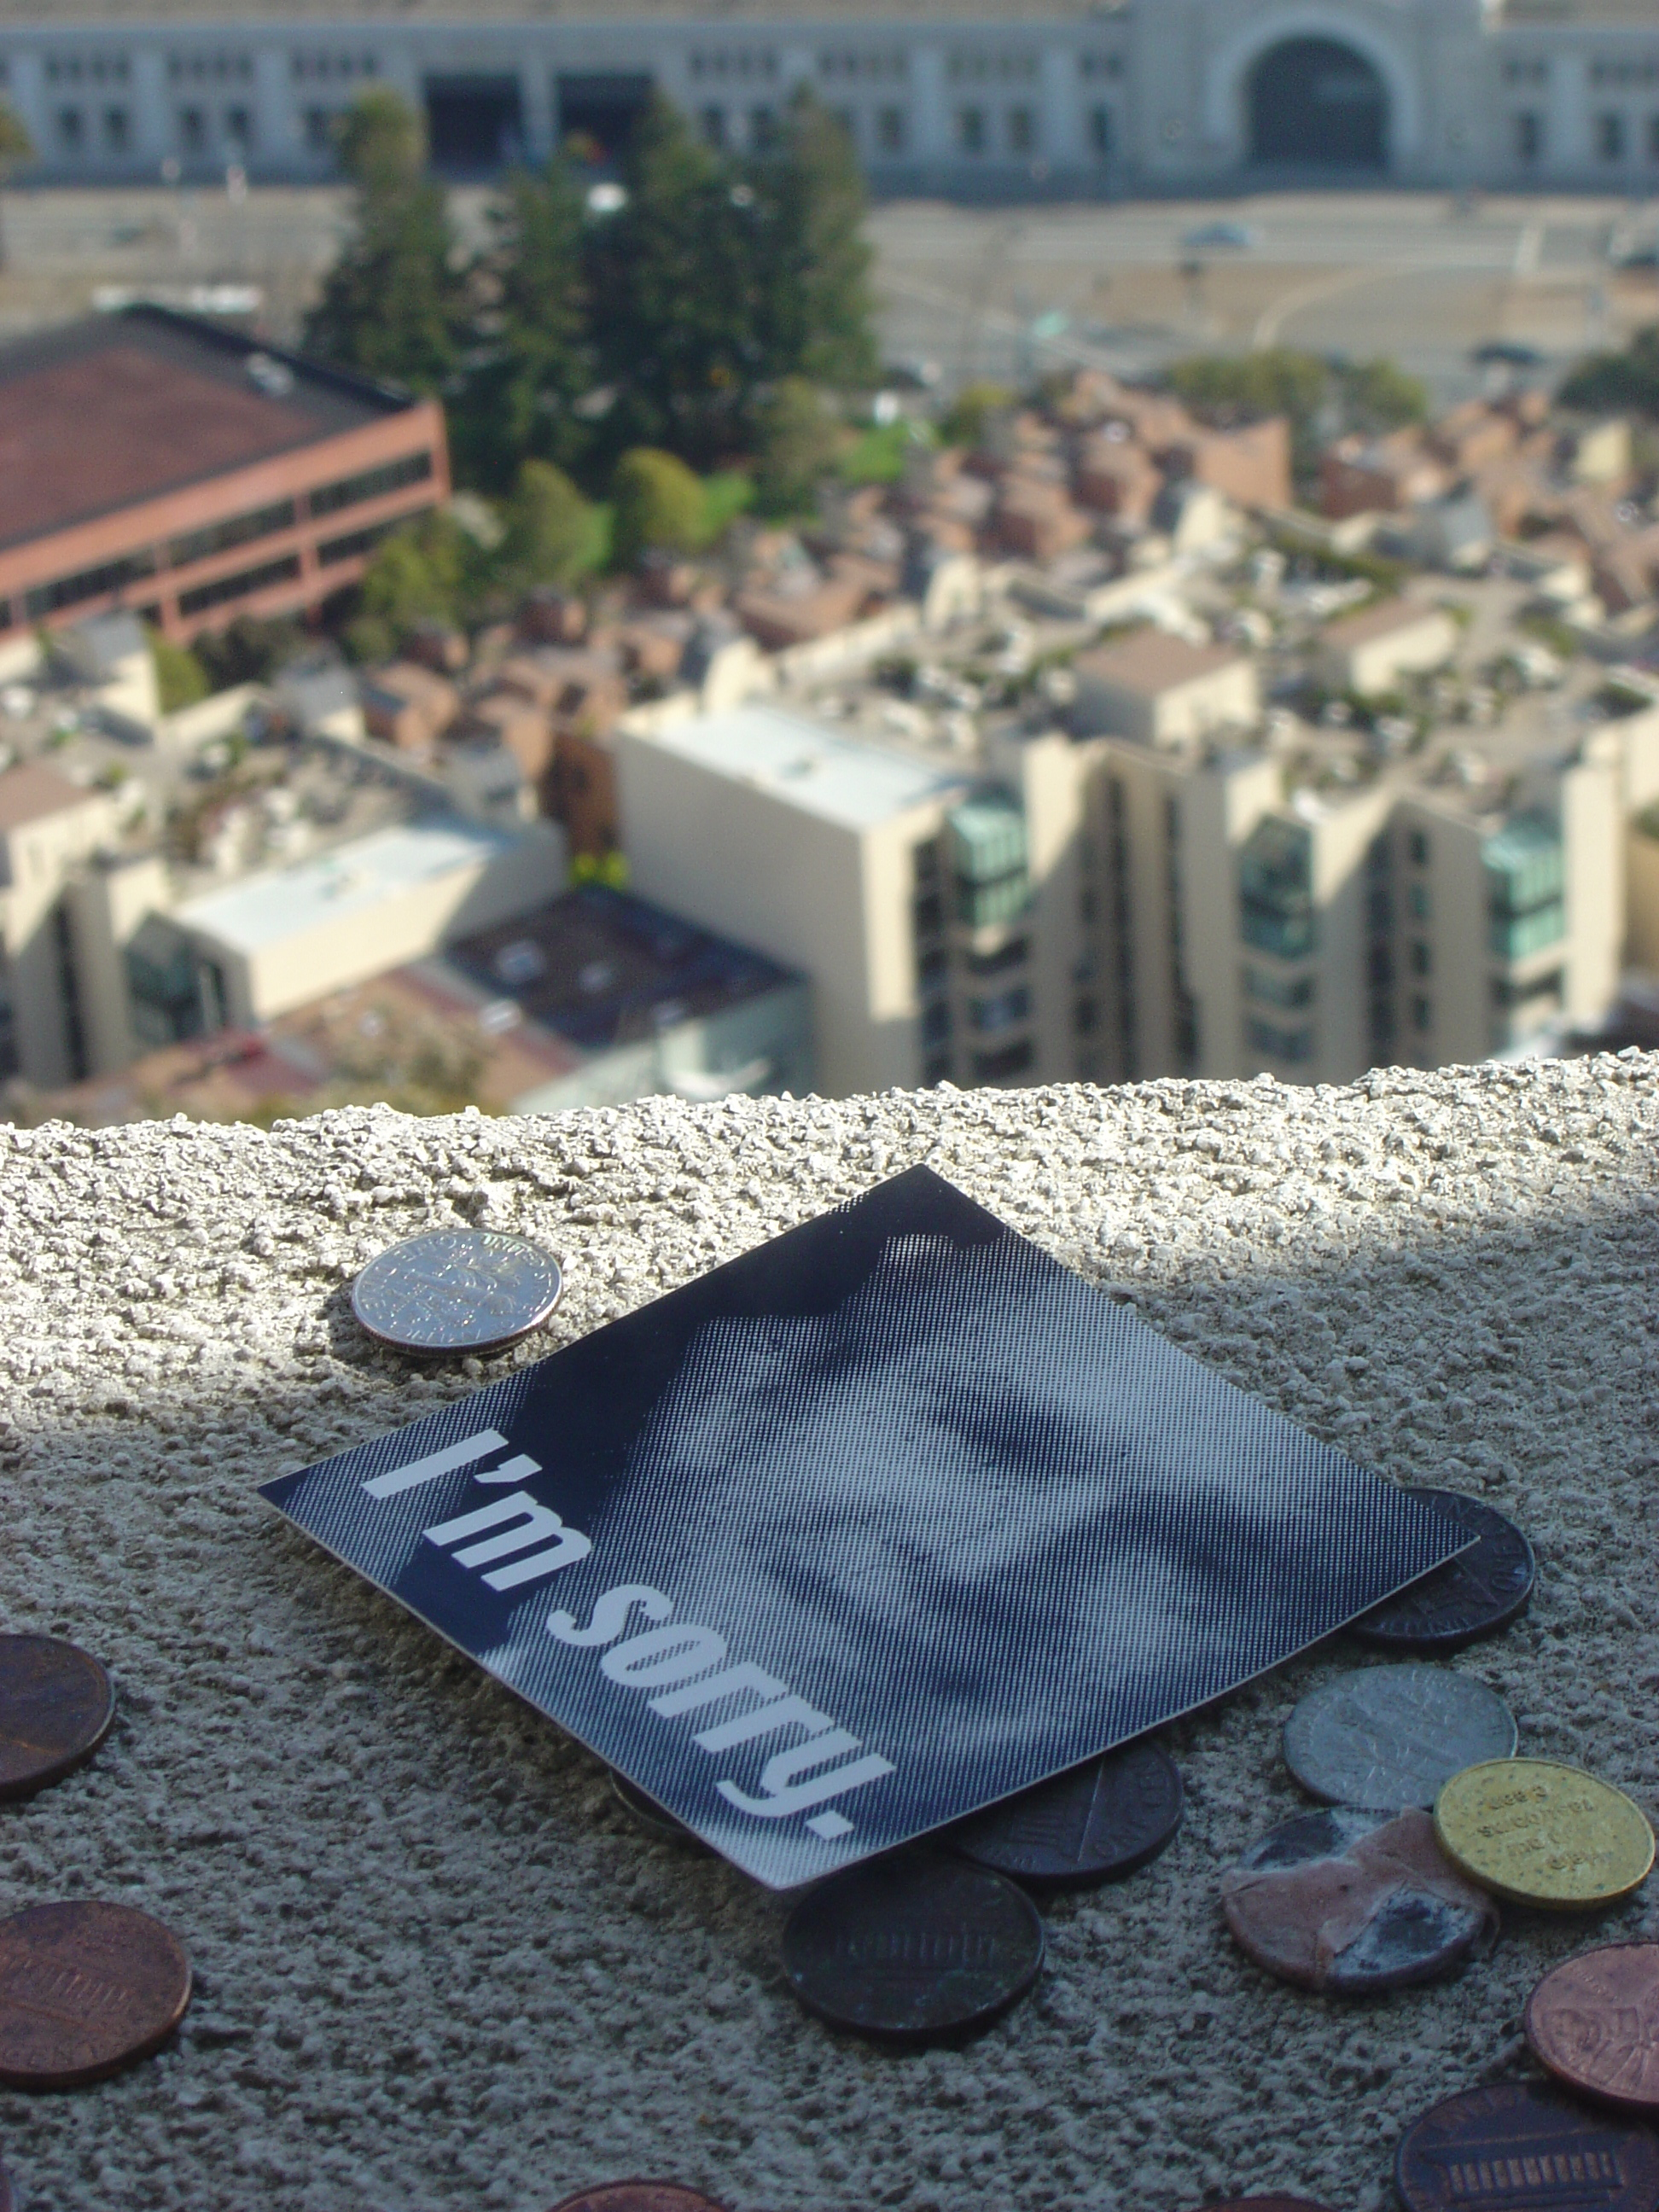 How did that sticker end up on the ledge of the Coit Tower?